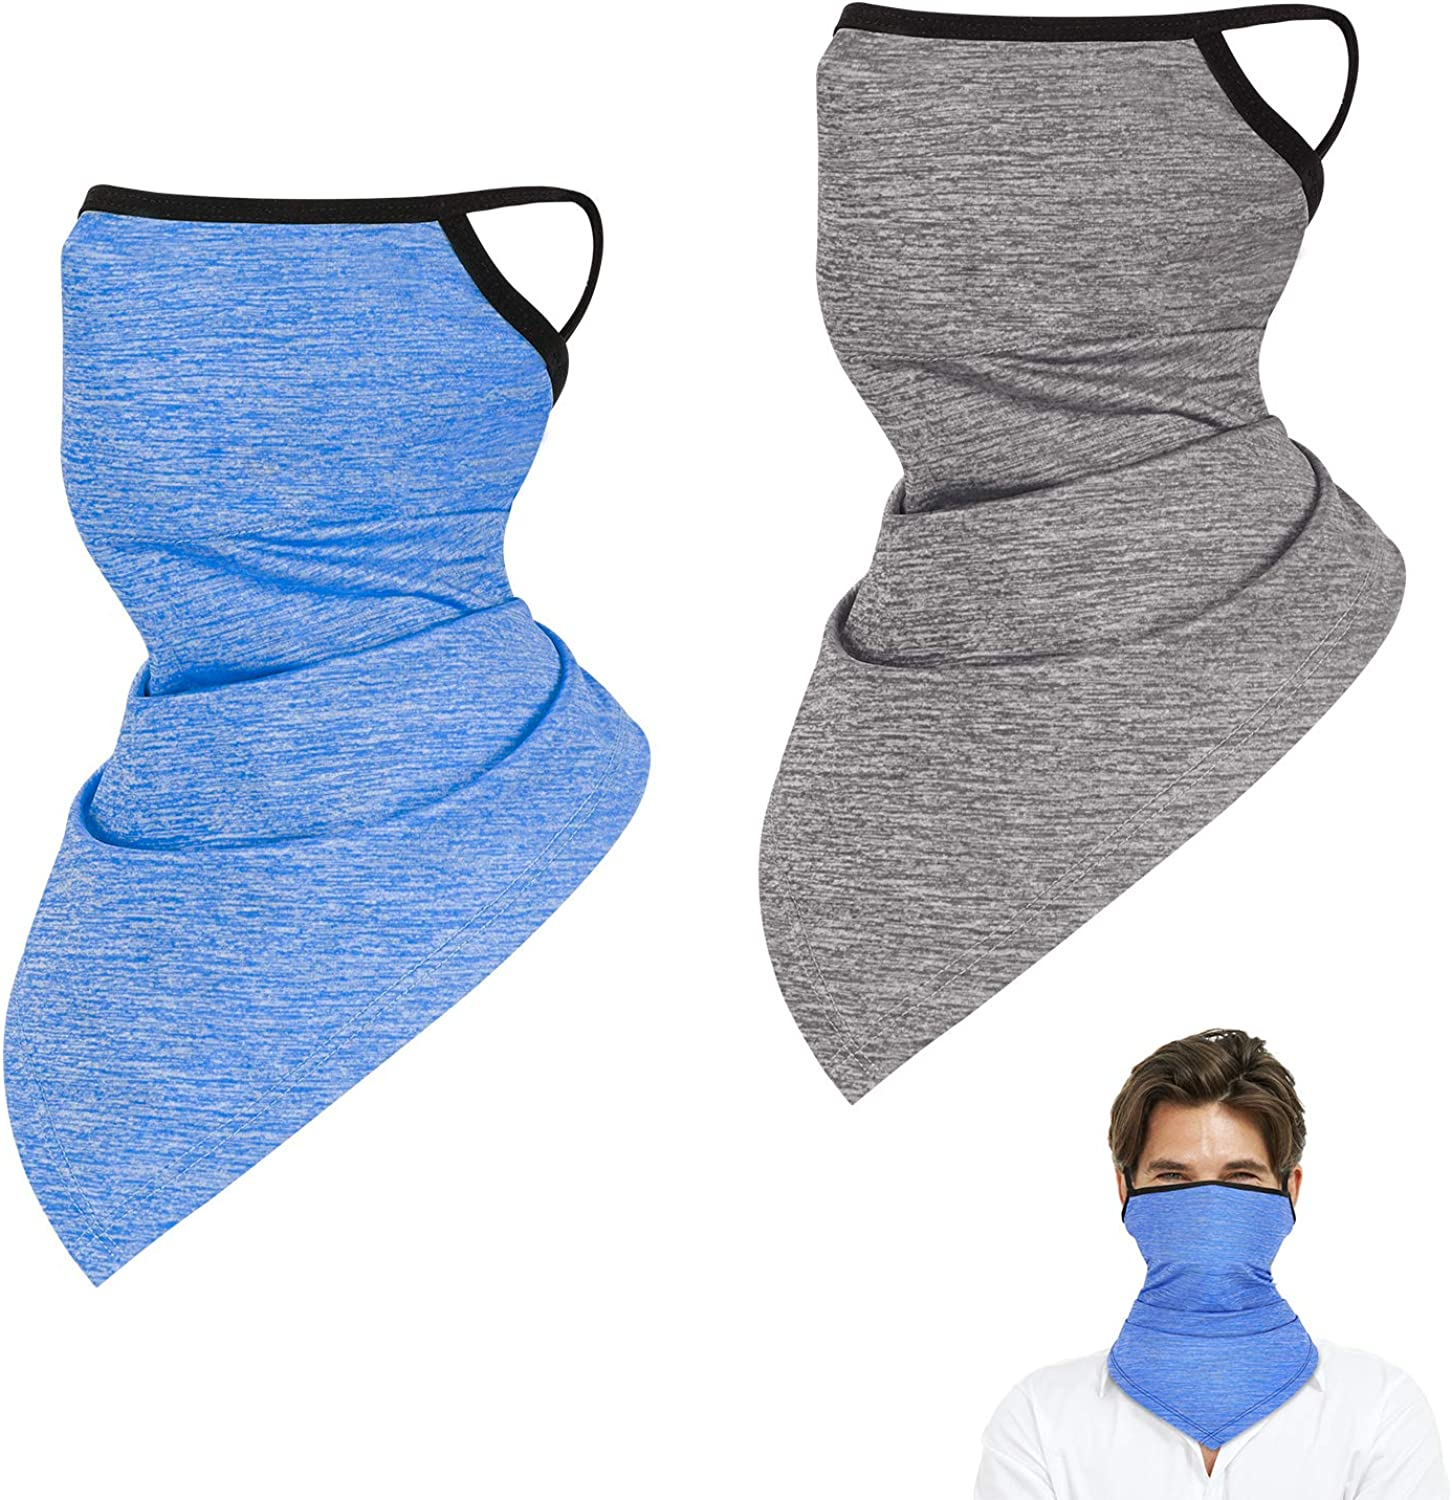 2 Pack Cooling Neck Gaiter with Ear Loops, Outdoor Summer Face Cover Scarf Bandana Balaclava for Men and Women